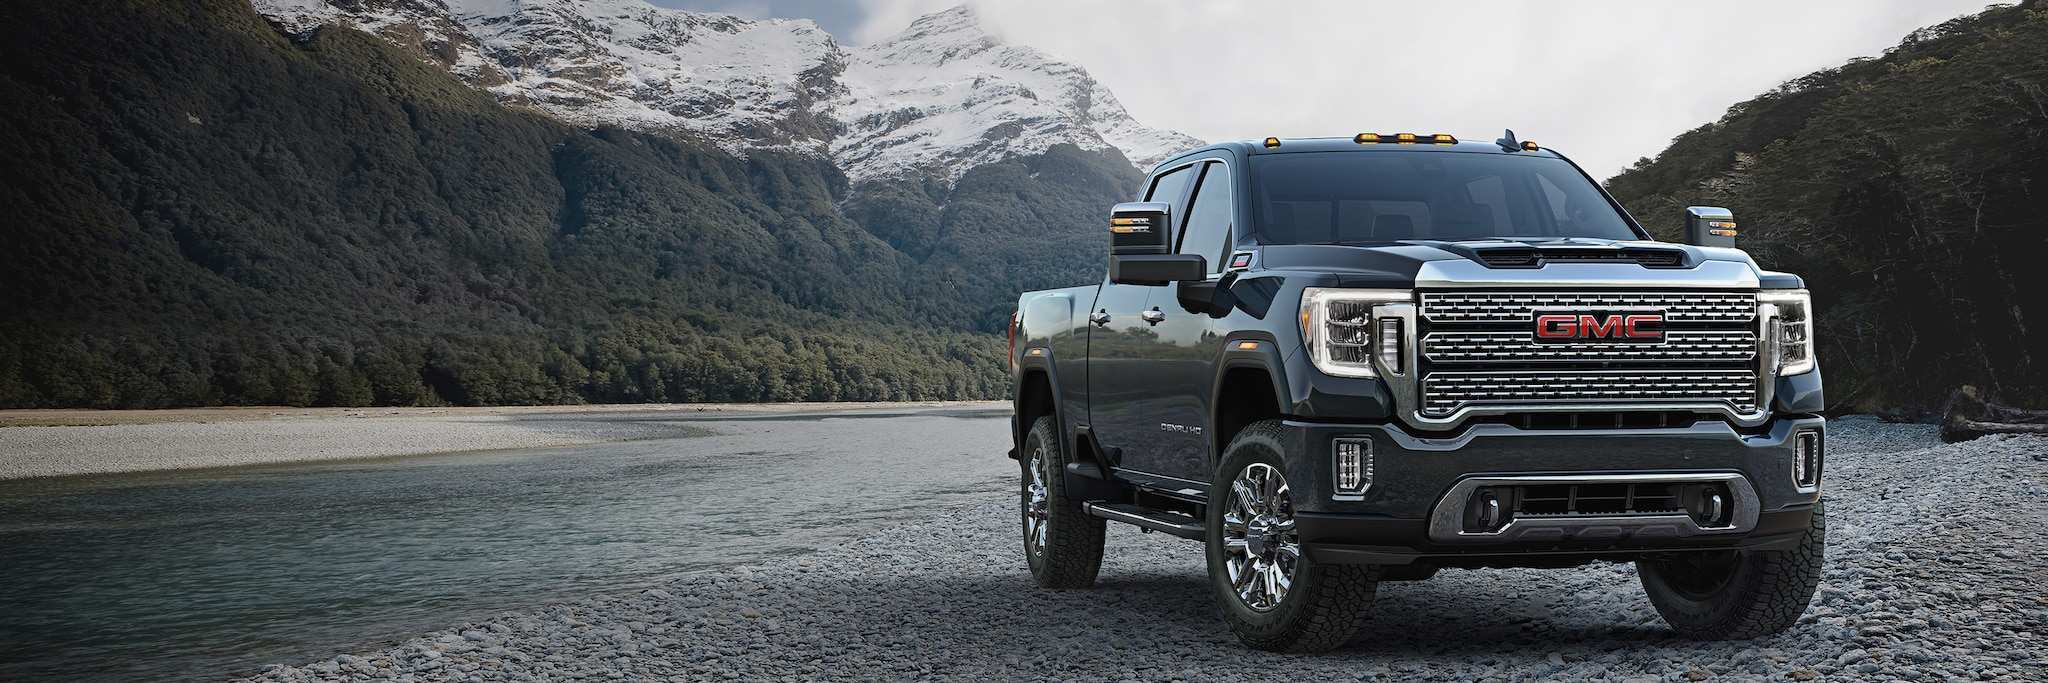 82 Best Gmc New Truck 2020 Redesign And Review